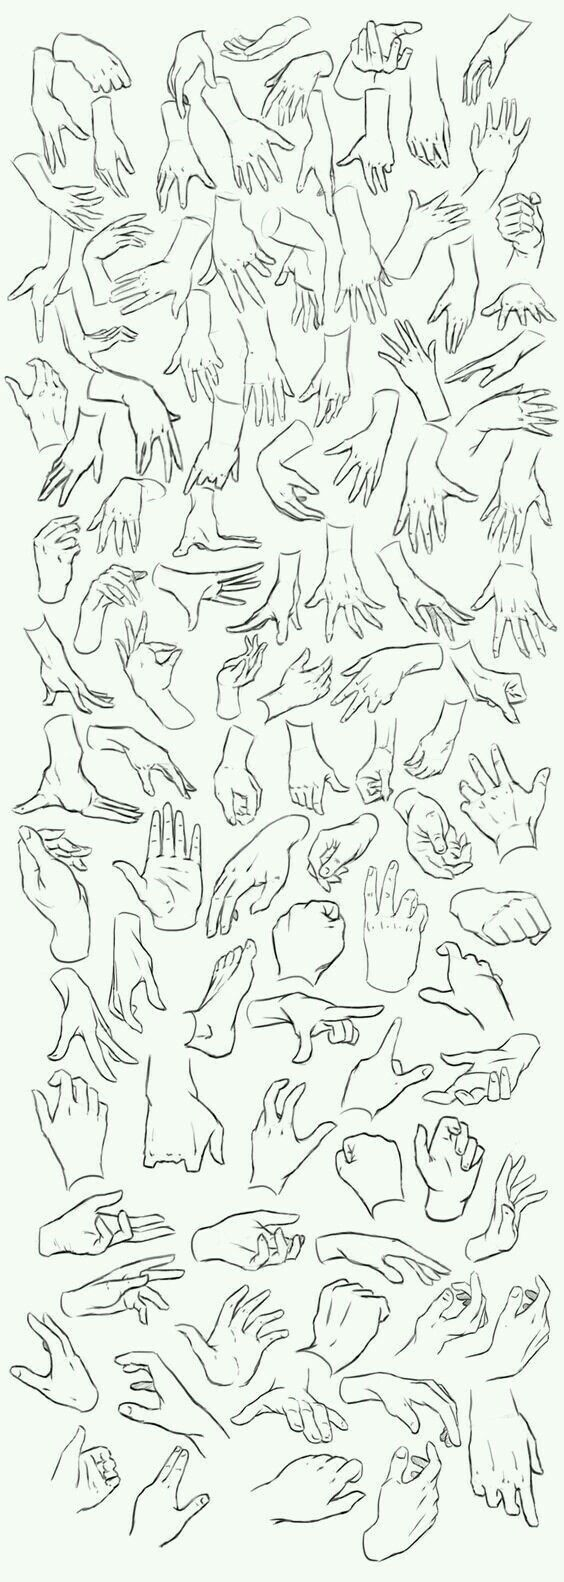 Different types of hands to draw                                                                                                                                                                                 More